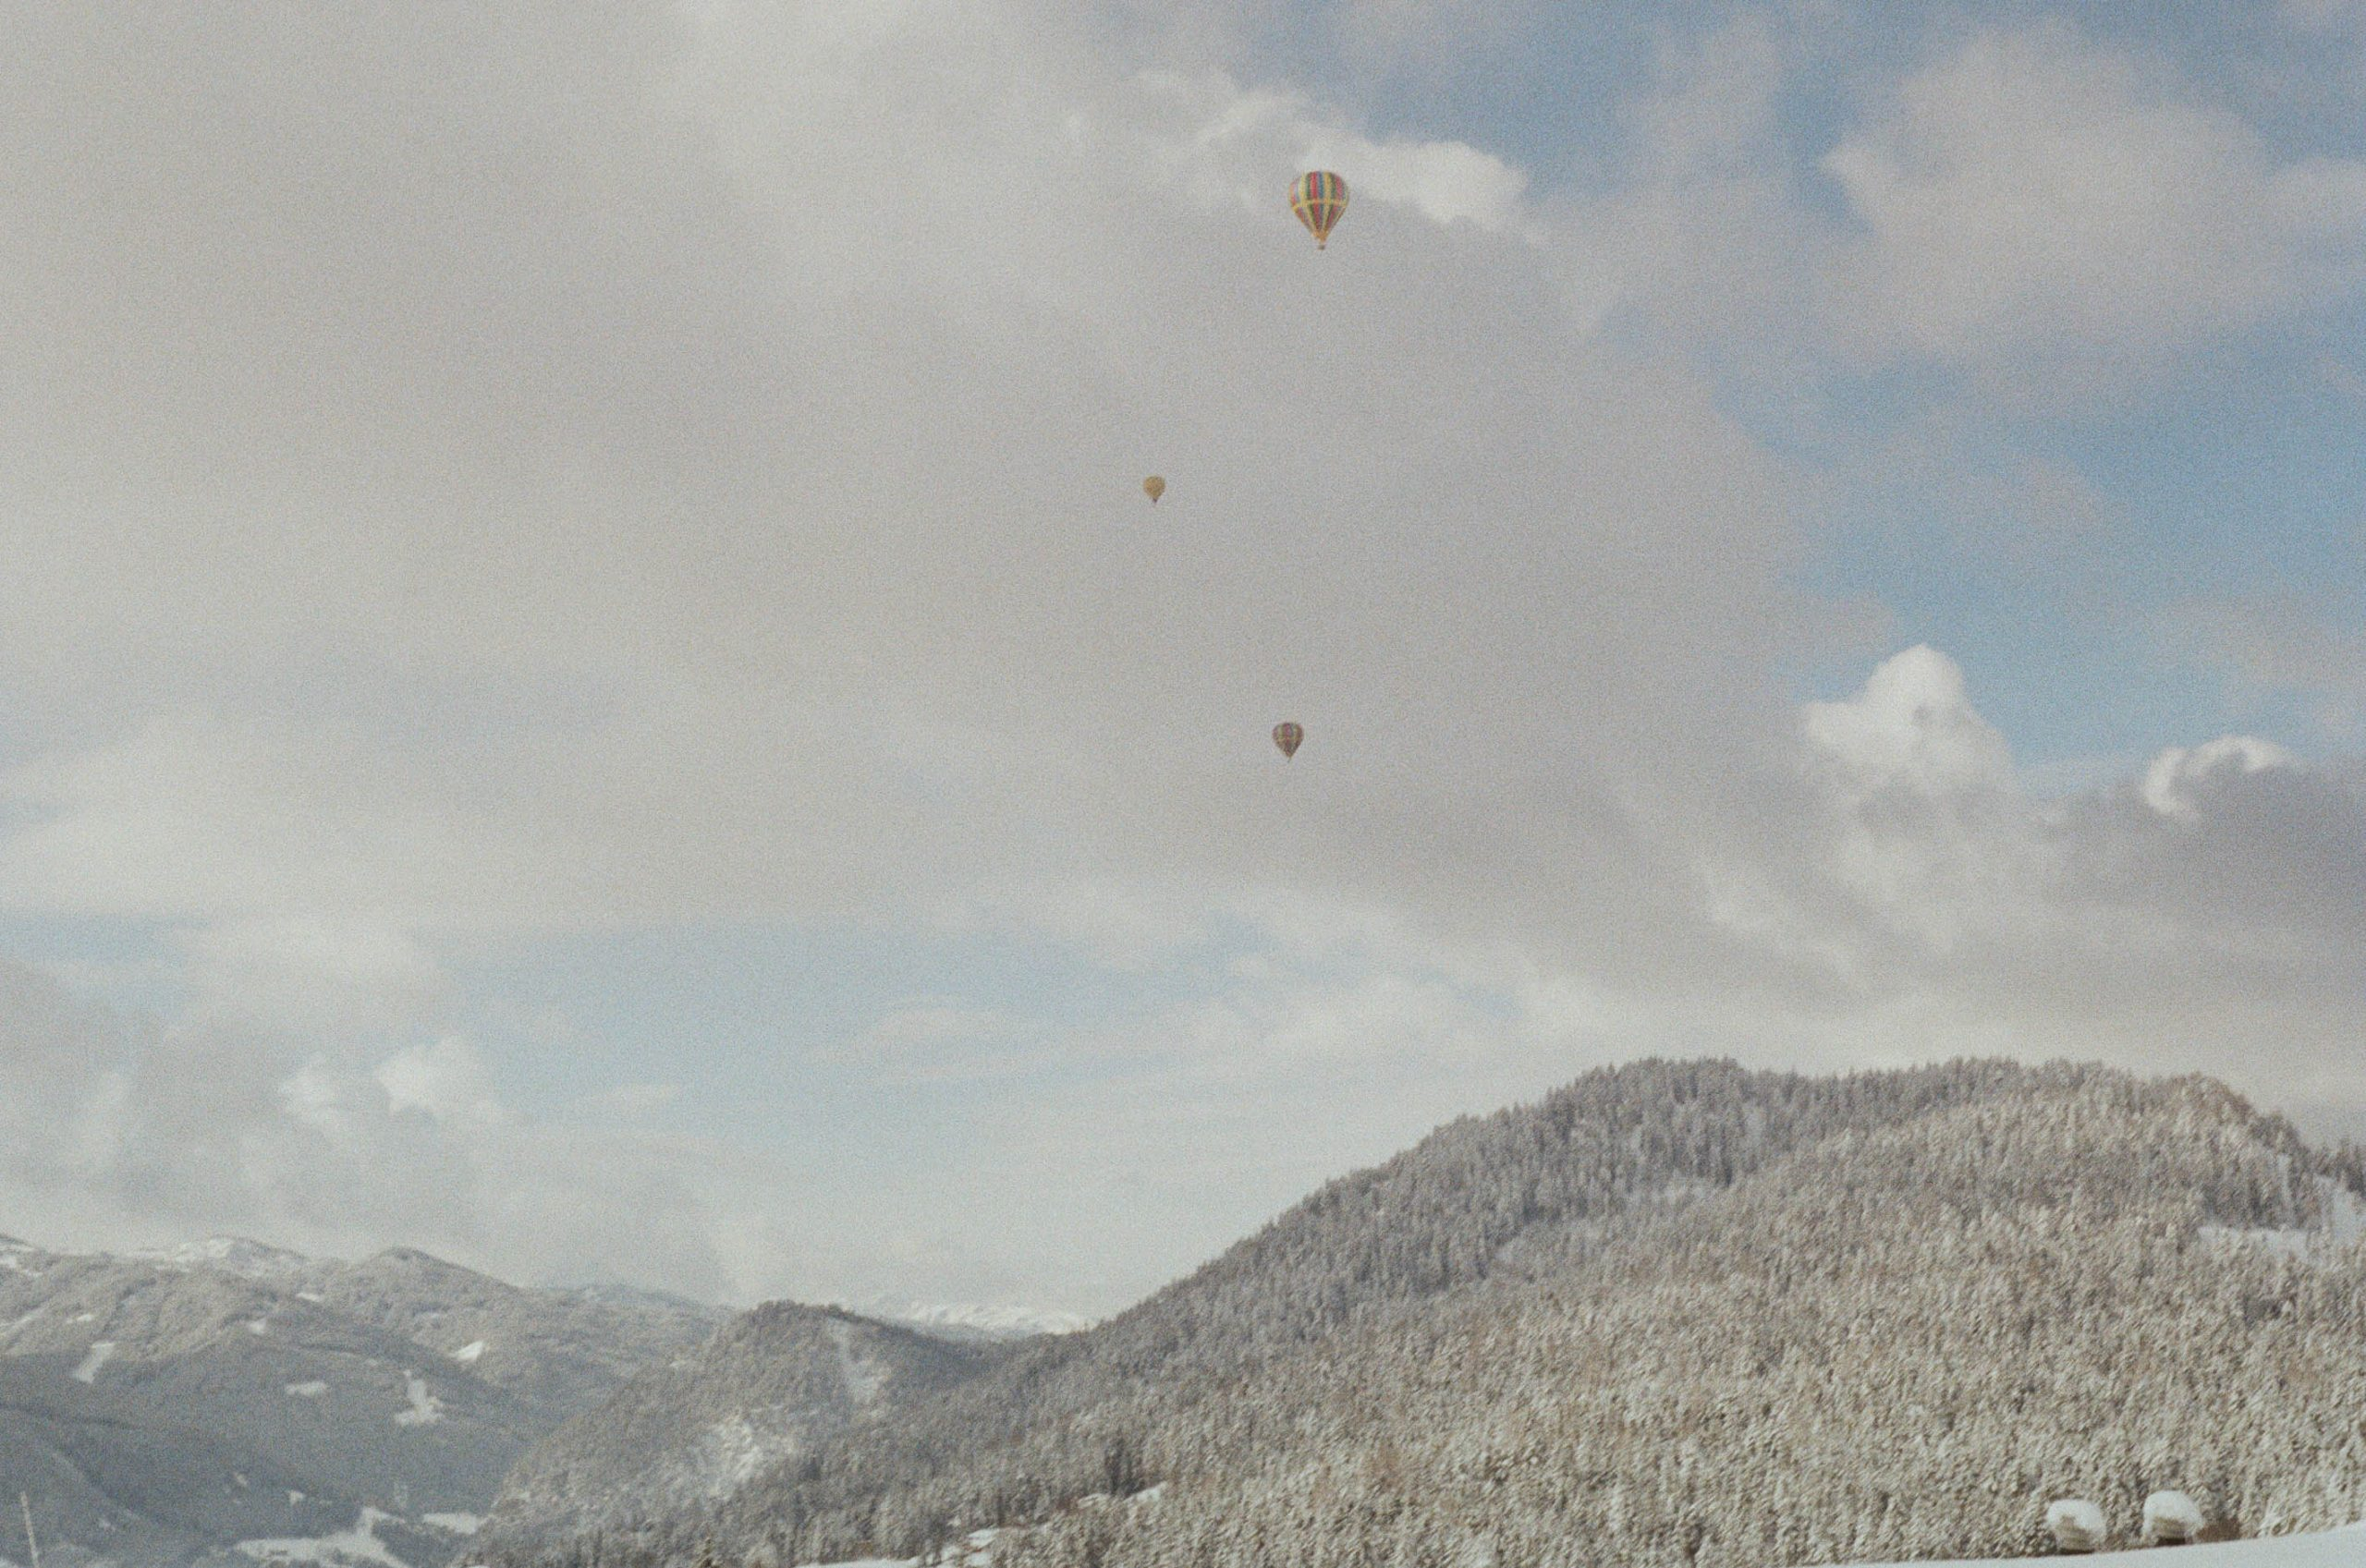 With baloons through winter